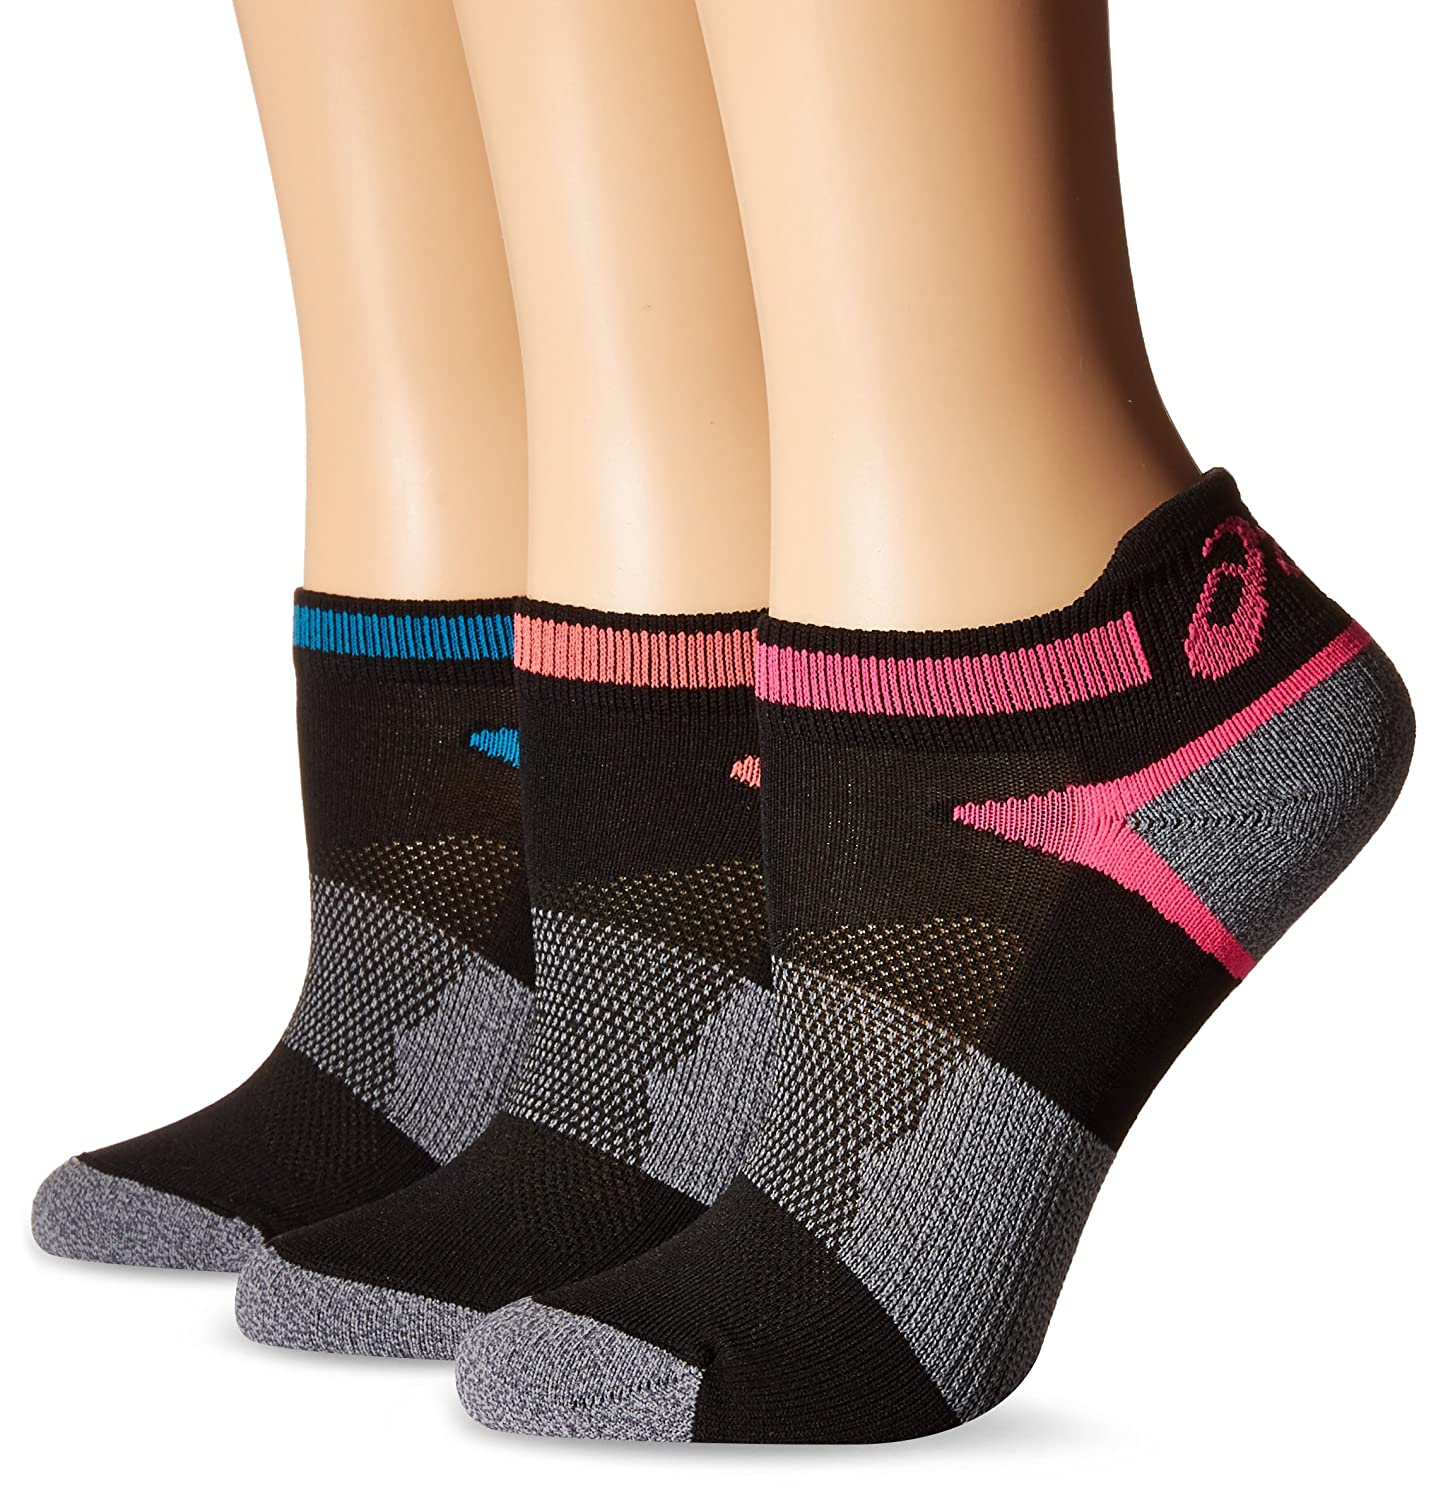 ASICS Women's Quick Lyte Cushion Single Tab Running Socks, Black Assorted, Medium,Pack of 3 ASICS Sports Apparel ZK2241W